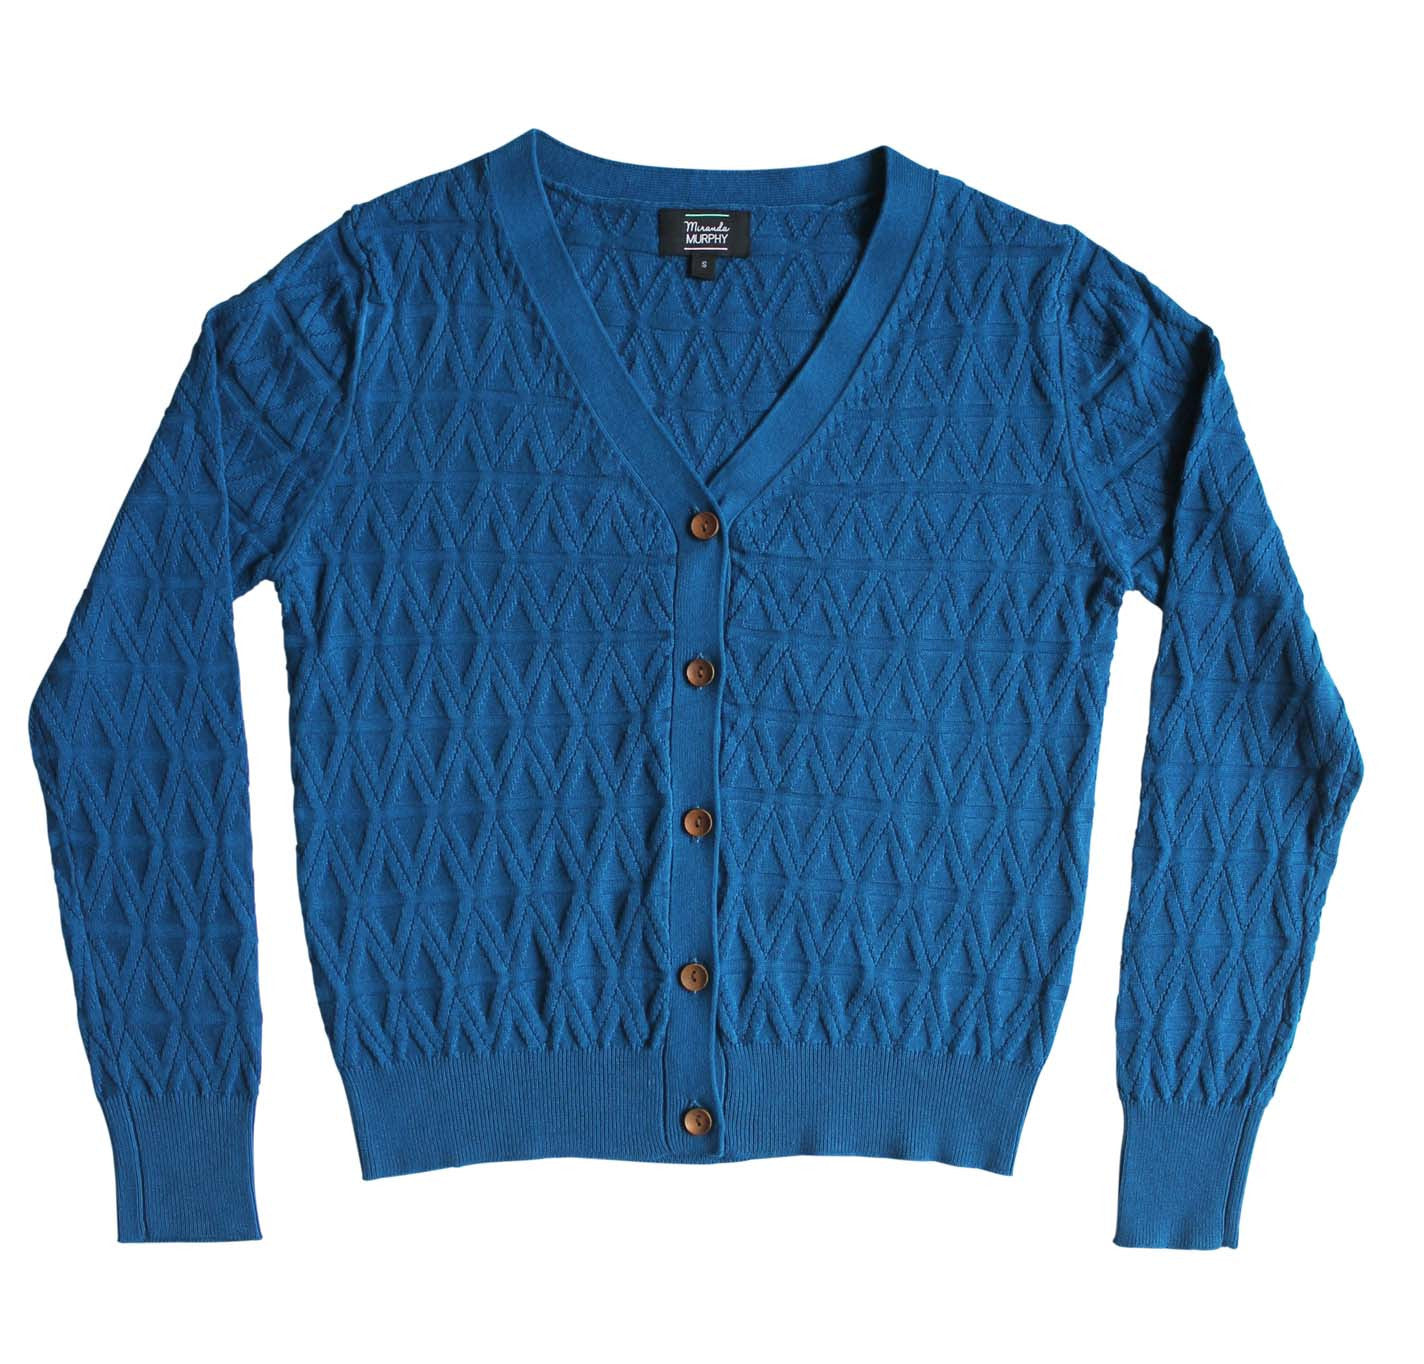 Geo Knit Cardigan - Ocean Blue